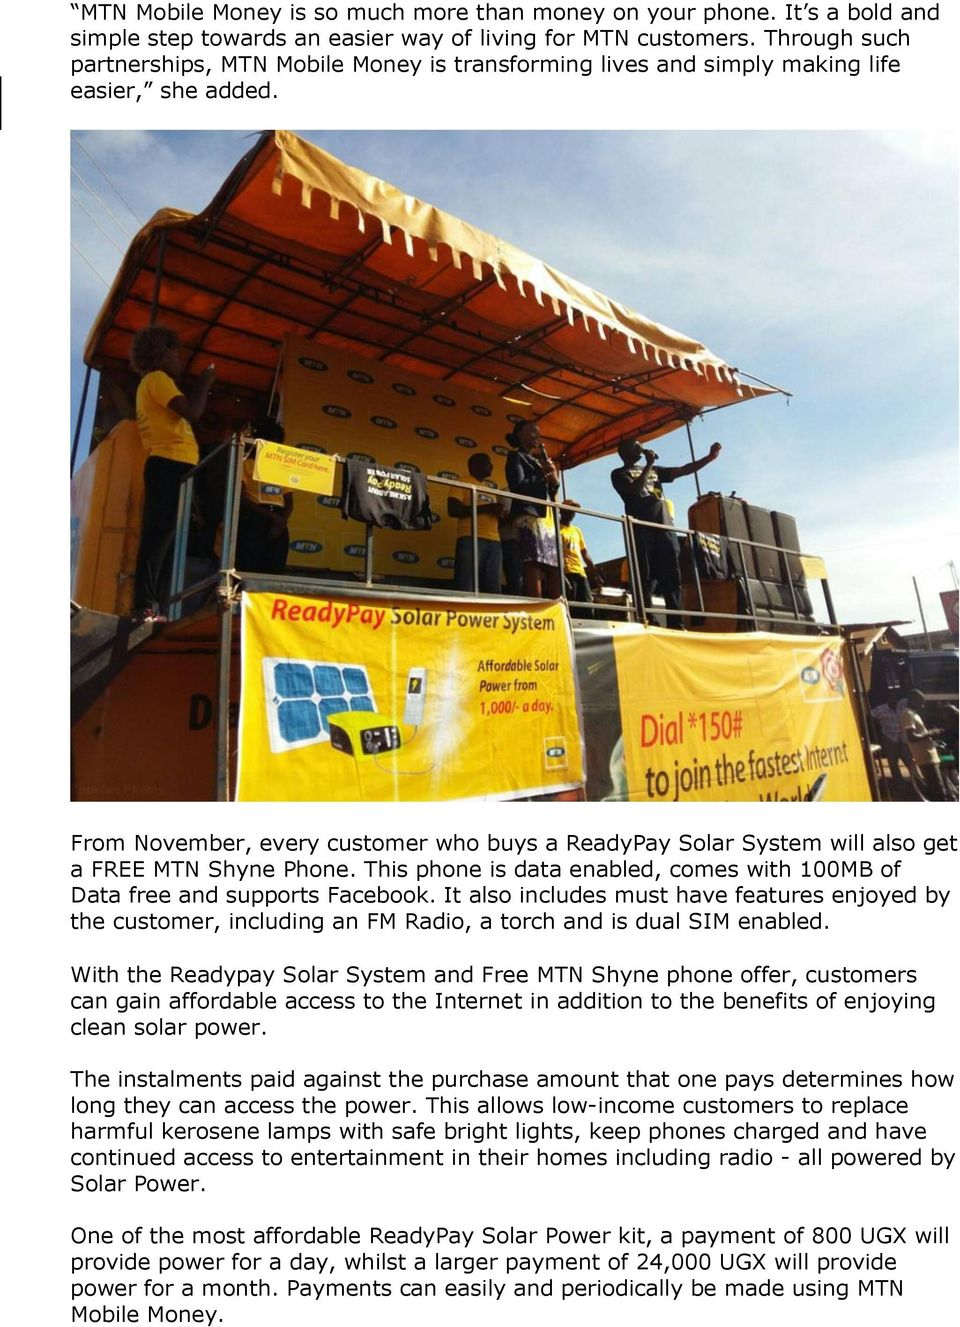 MTN and Fenix partner to offer free Internet enabled phones on